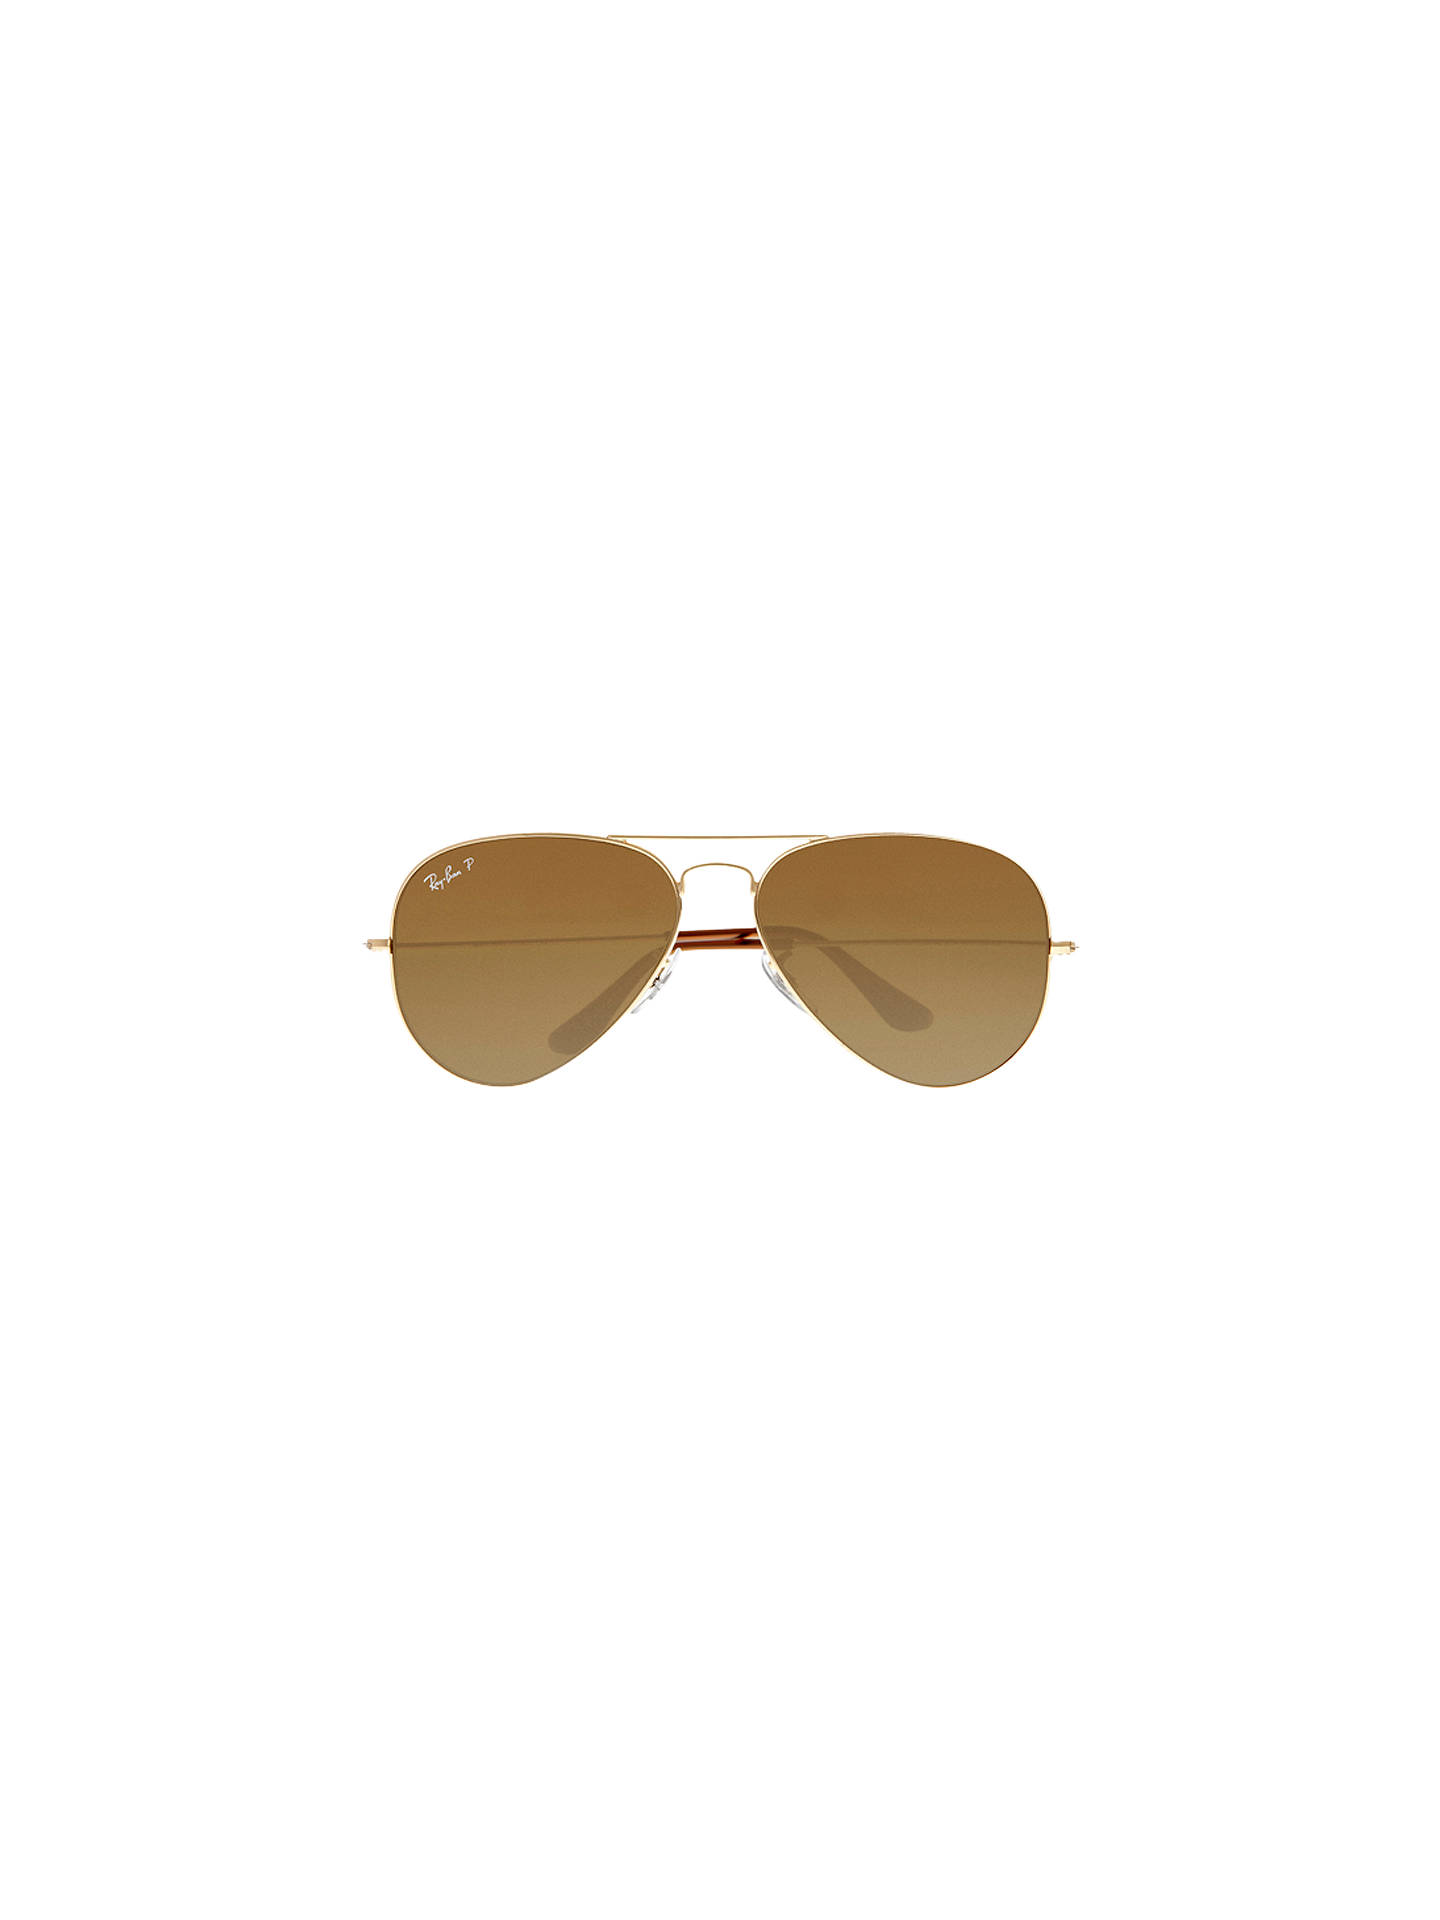 30dc2ff8dd Ray-Ban RB3025 Iconic Aviator Sunglasses at John Lewis   Partners